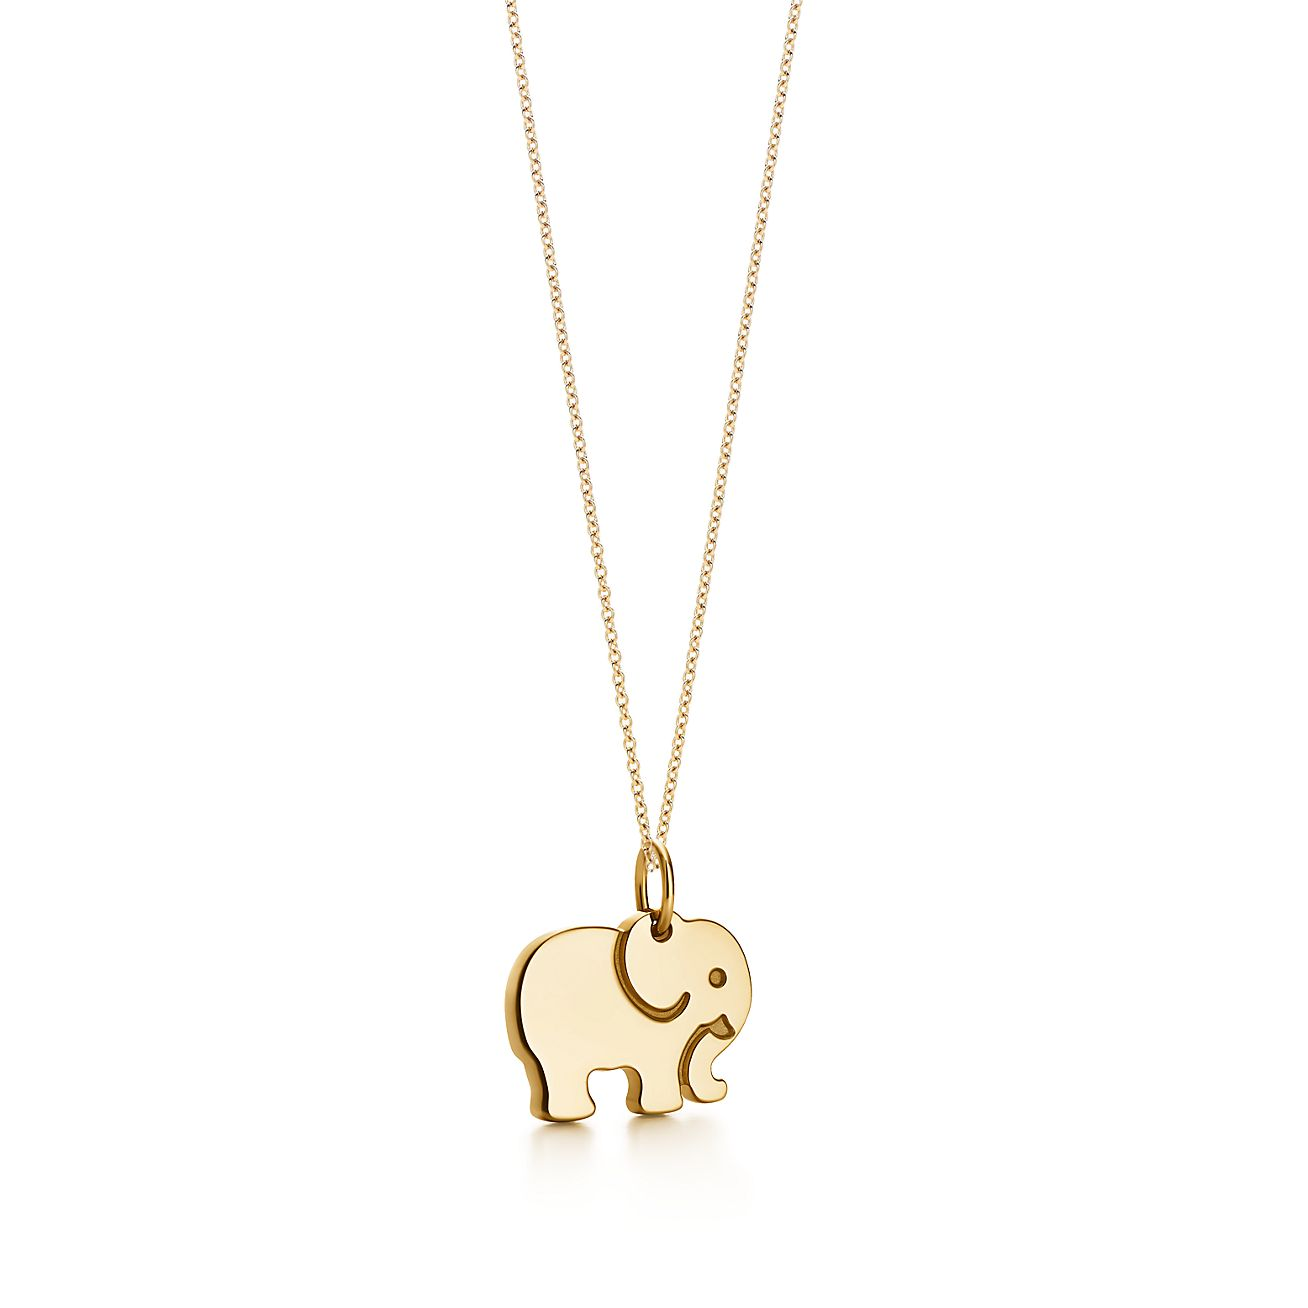 Tiffany charms elephant never forgets charm in 18k gold tiffany browse necklaces pendants tiffany charmselephant never forgets charm mozeypictures Choice Image